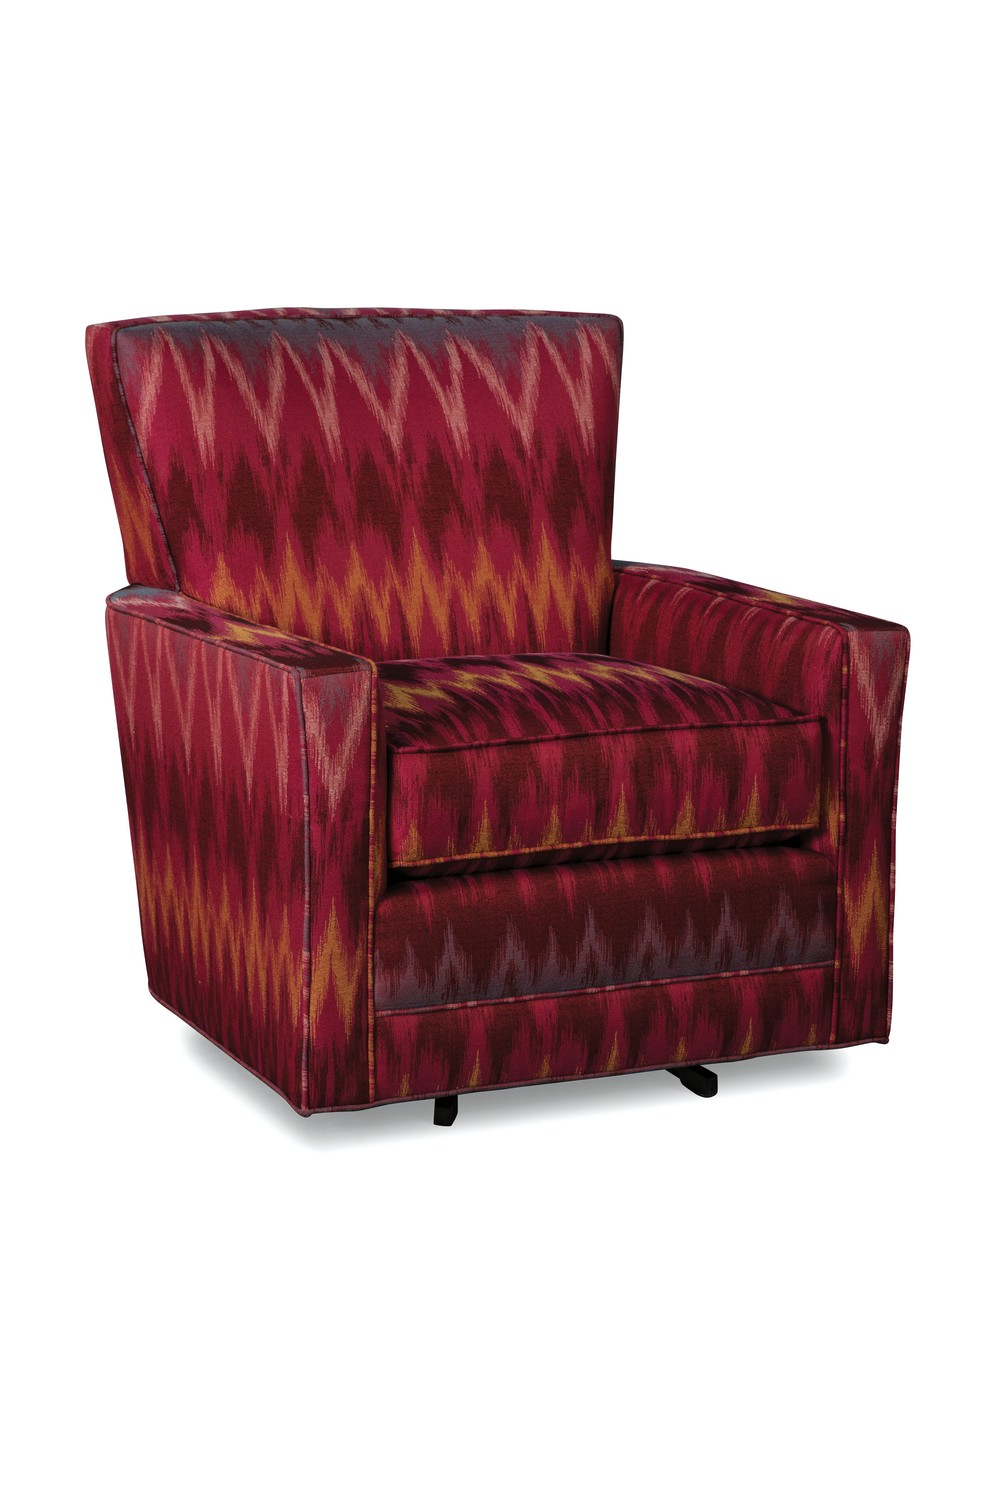 Craftmaster Furniture - Swivel Chair